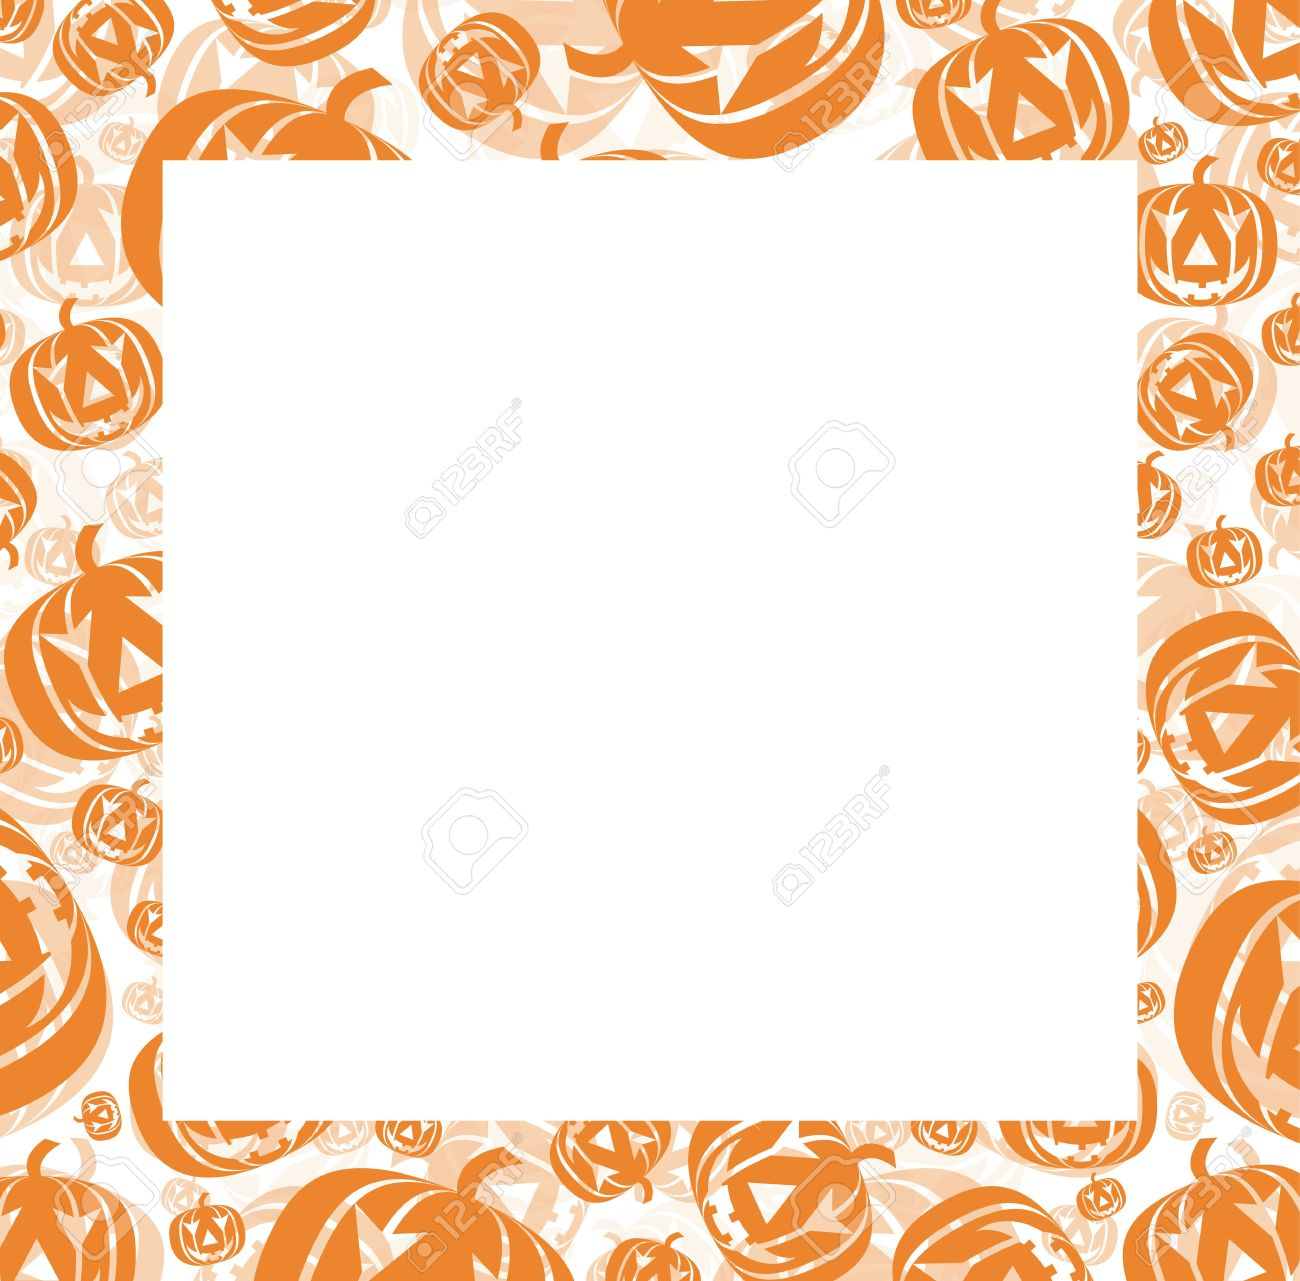 Halloween Frame Stock Photo, Picture And Royalty Free Image. Image ...